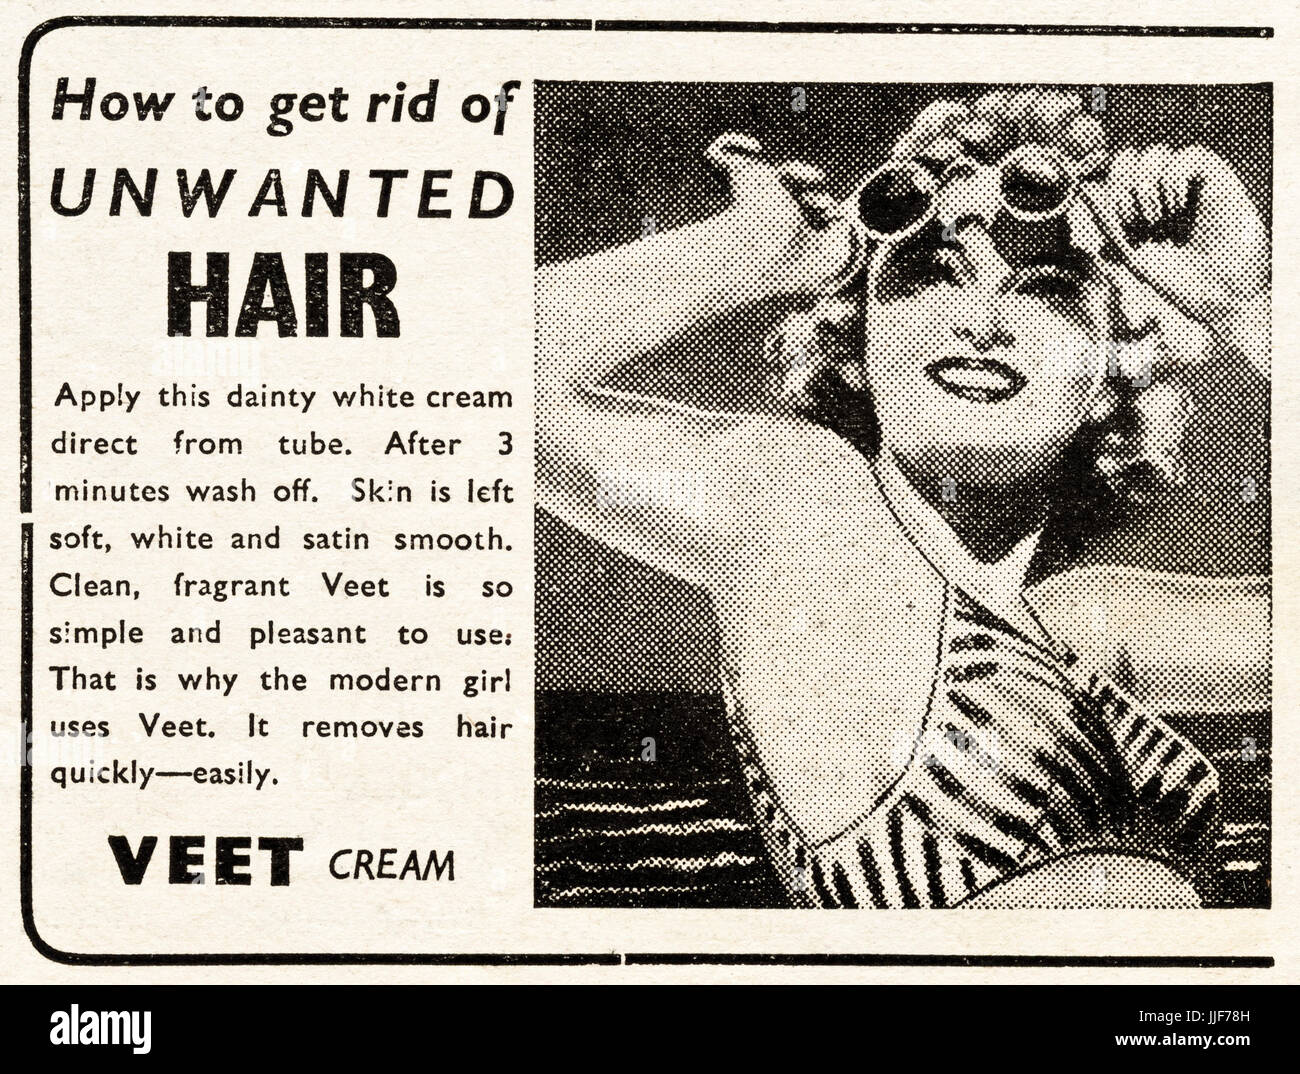 1940s Original Old Vintage Advertisement Advertising Veet Hair